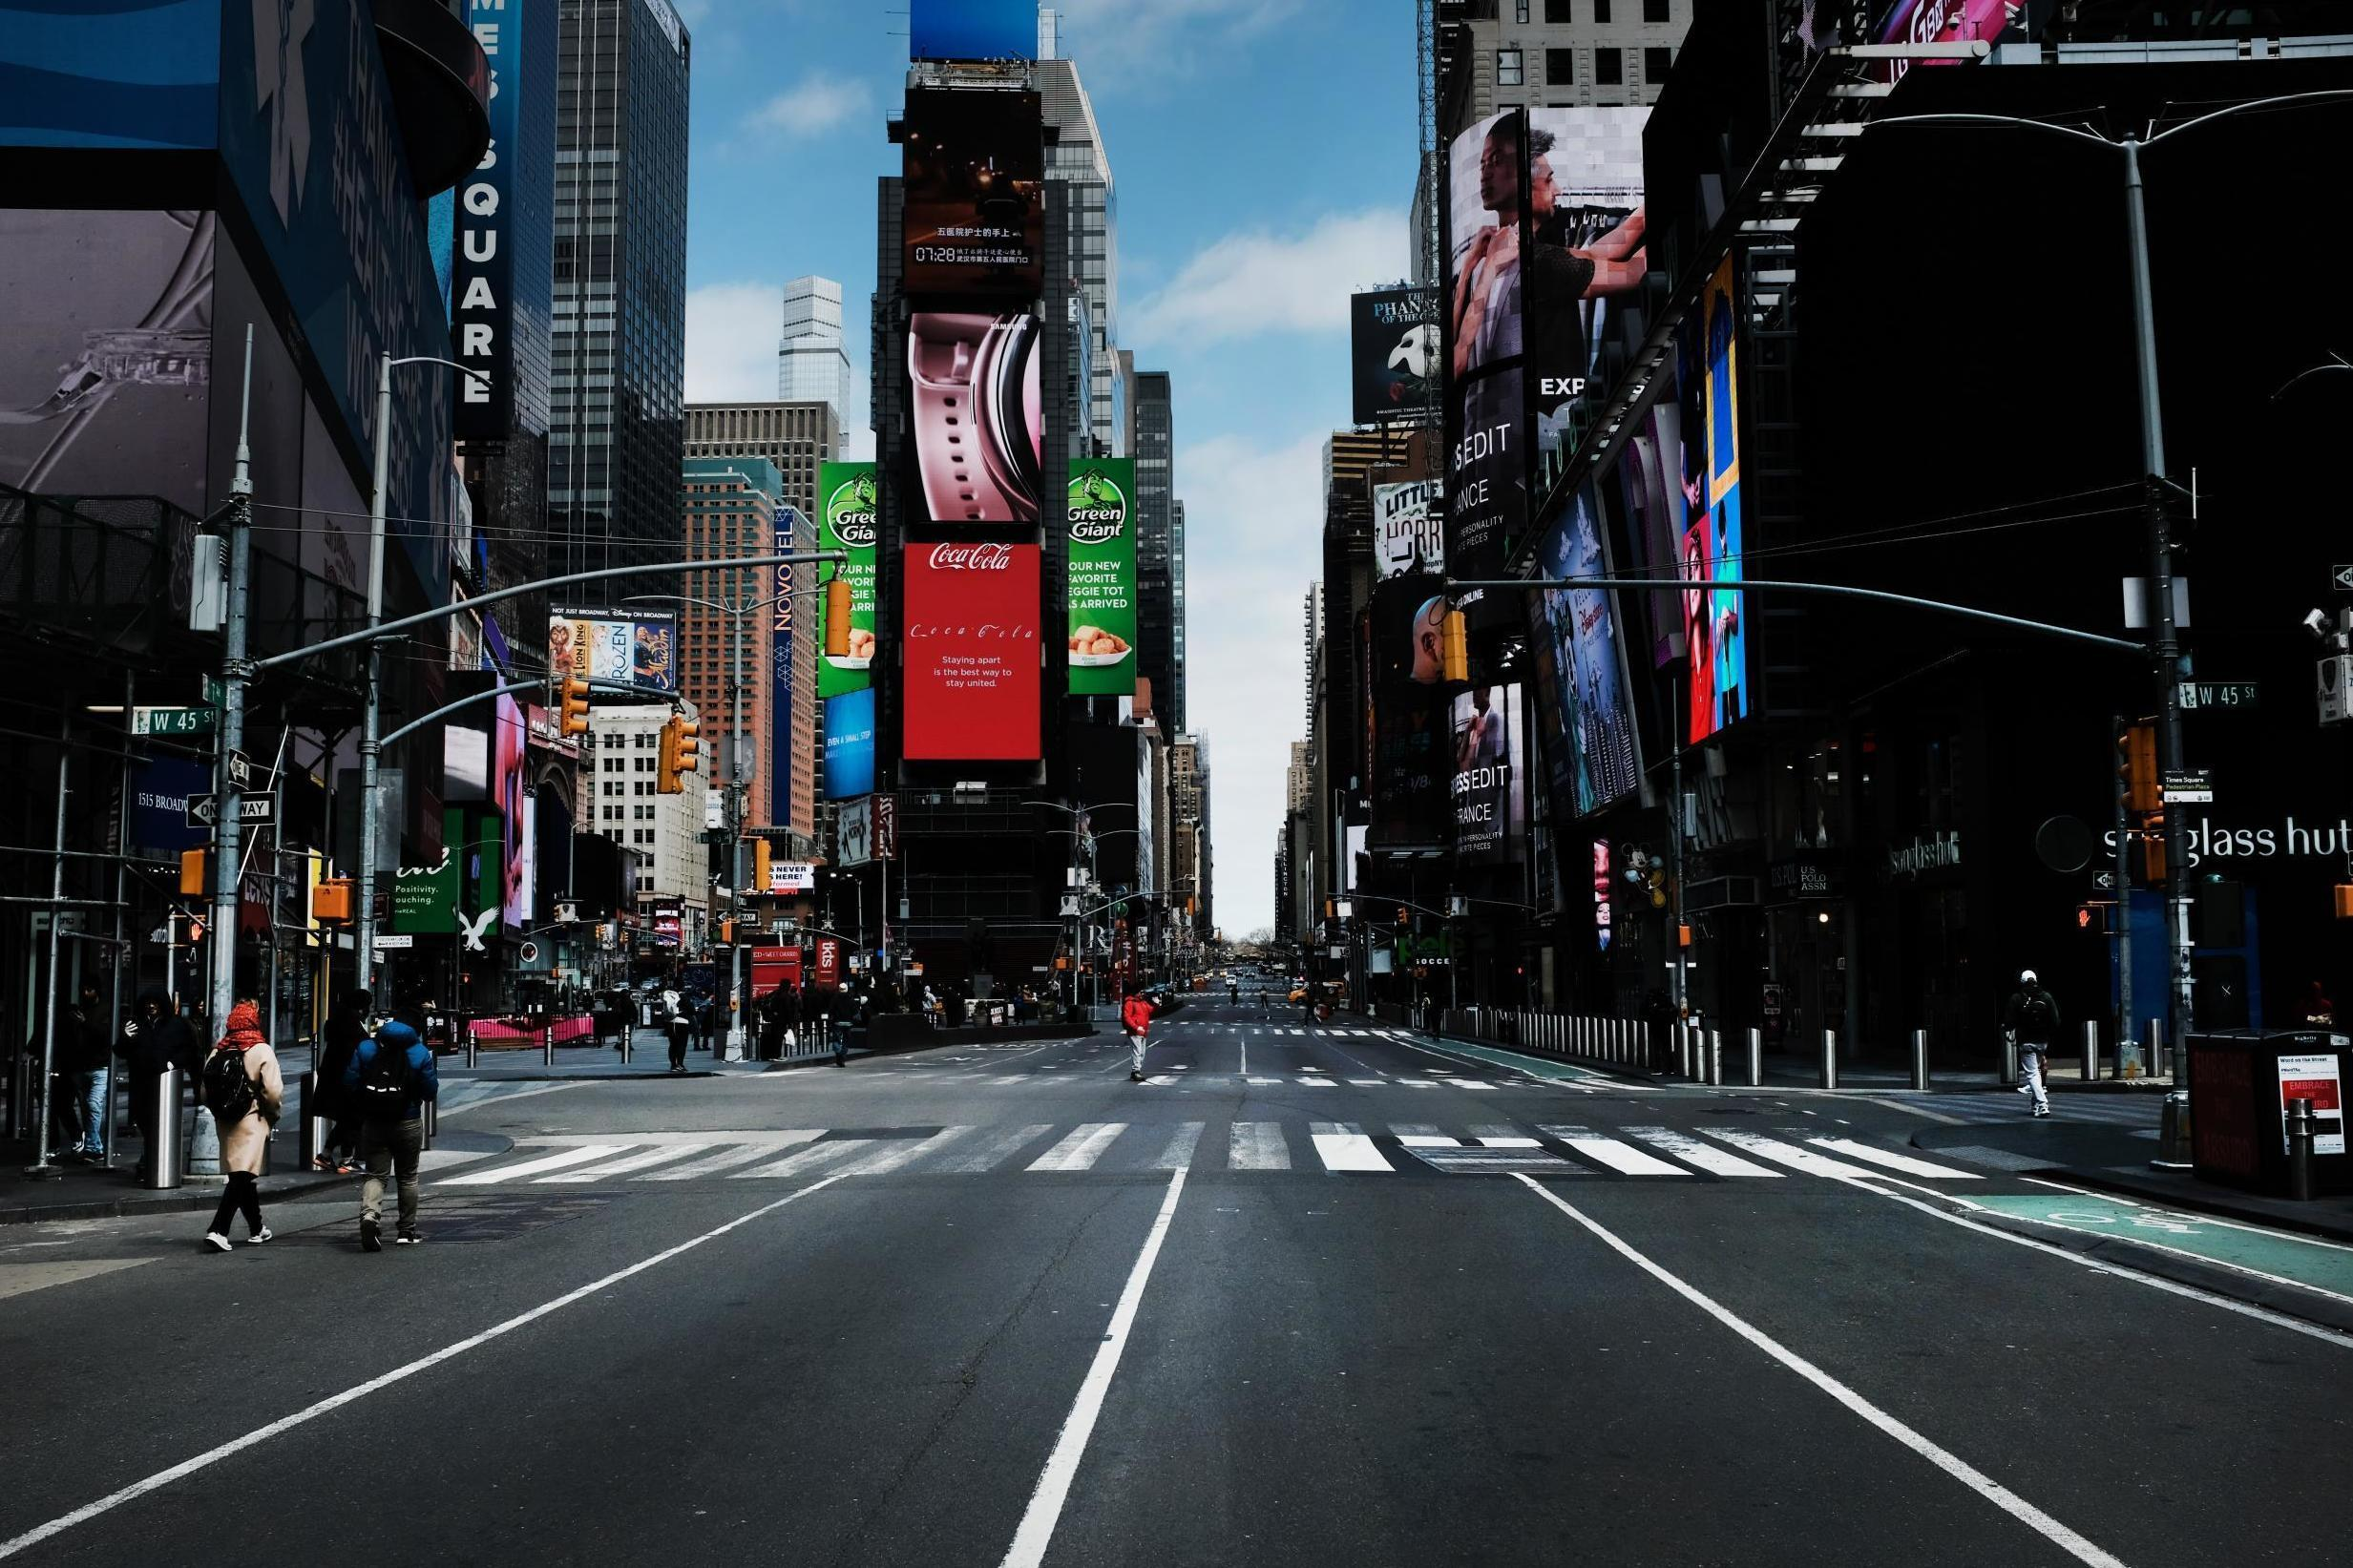 New York City When Will City Reopen Broadway Shopping And Restaurants The Independent Independent